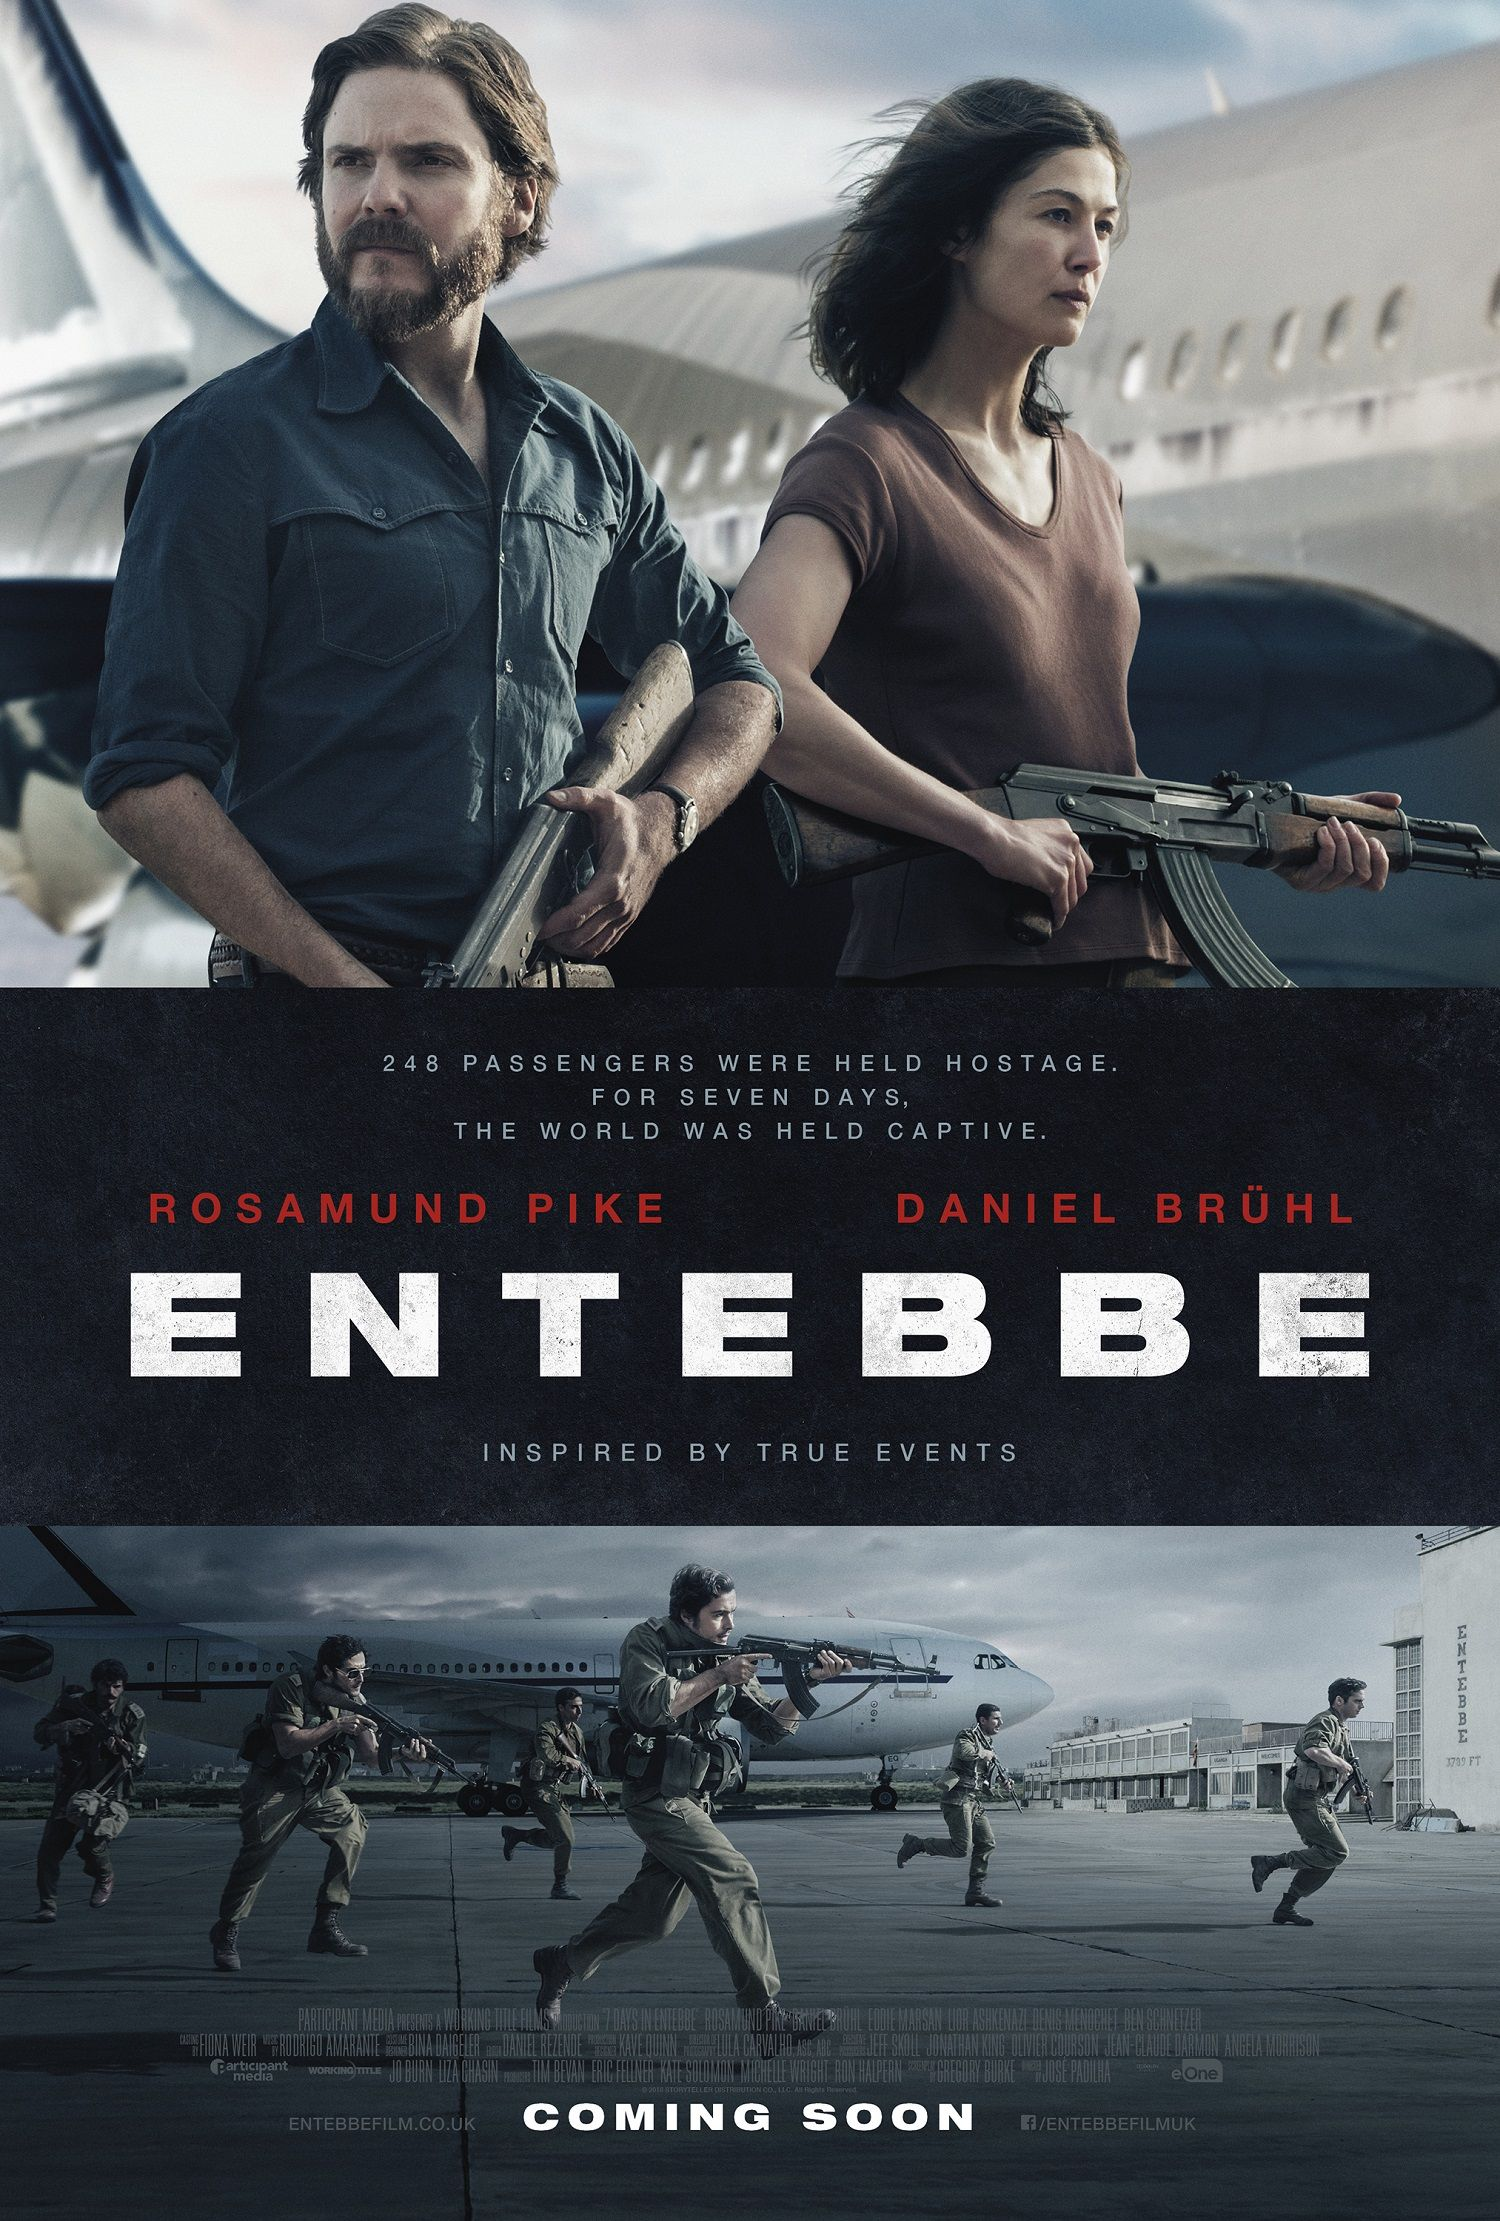 José Padilha's Entebbe gets a new poster Live for Films